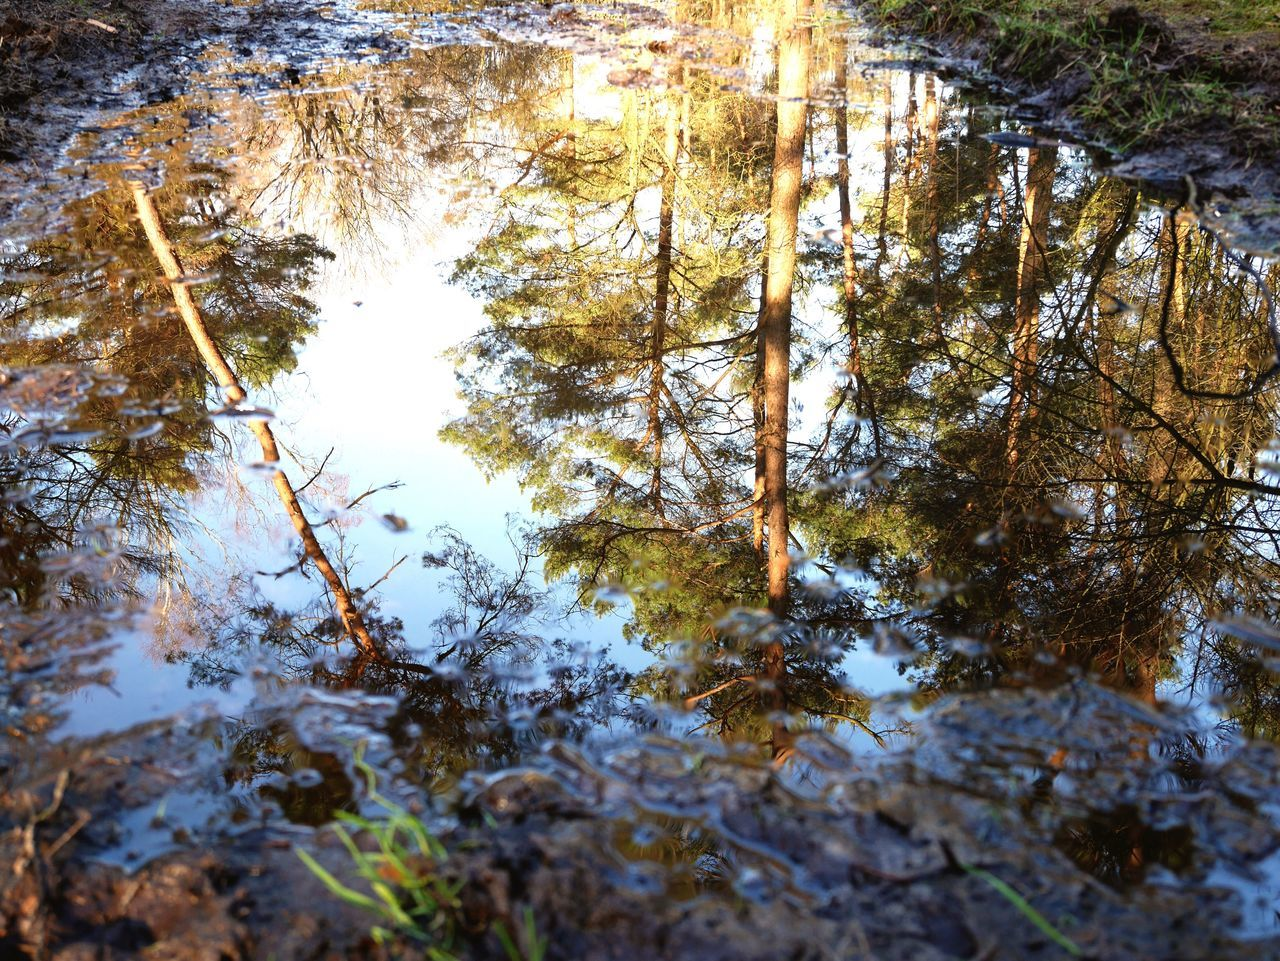 reflection, nature, water, tree, day, outdoors, tranquility, no people, lake, beauty in nature, forest, growth, puddle, close-up